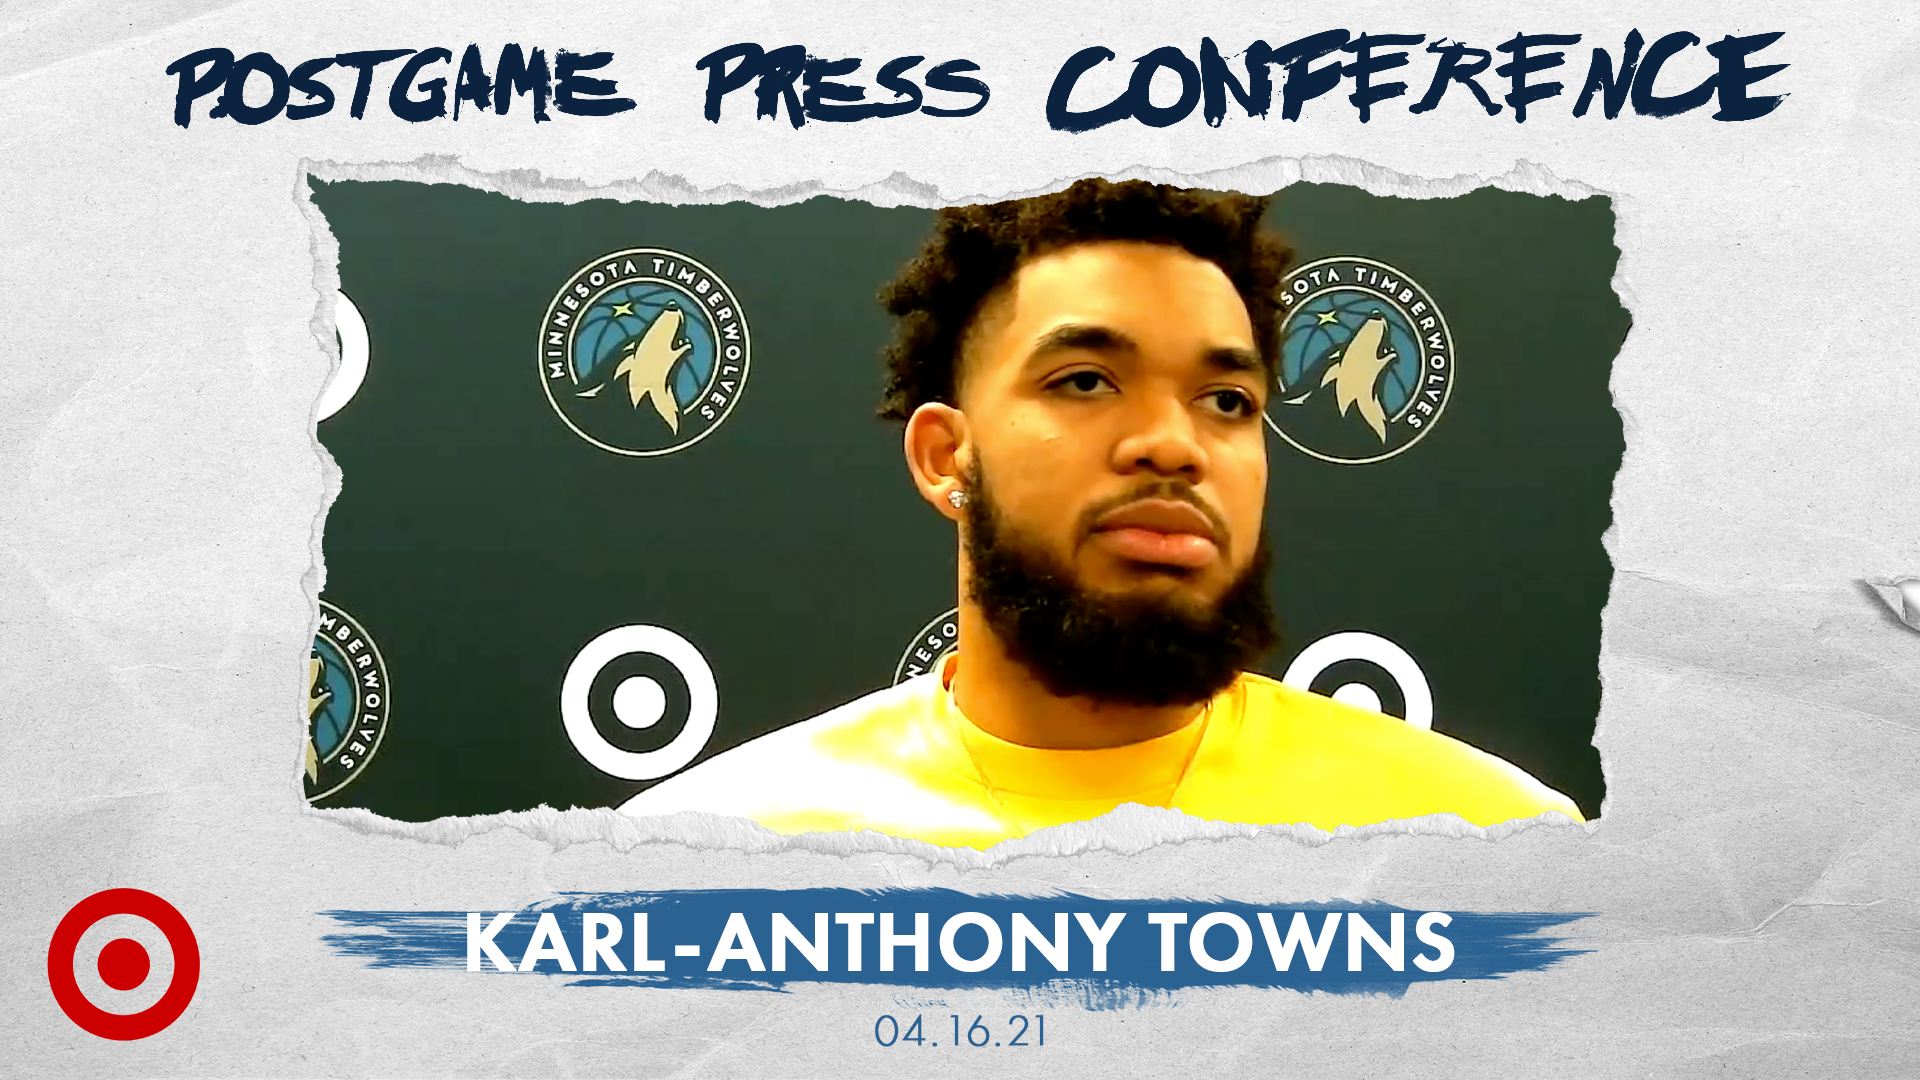 Karl-Anthony Towns Postgame Press Conference - April 16, 2021